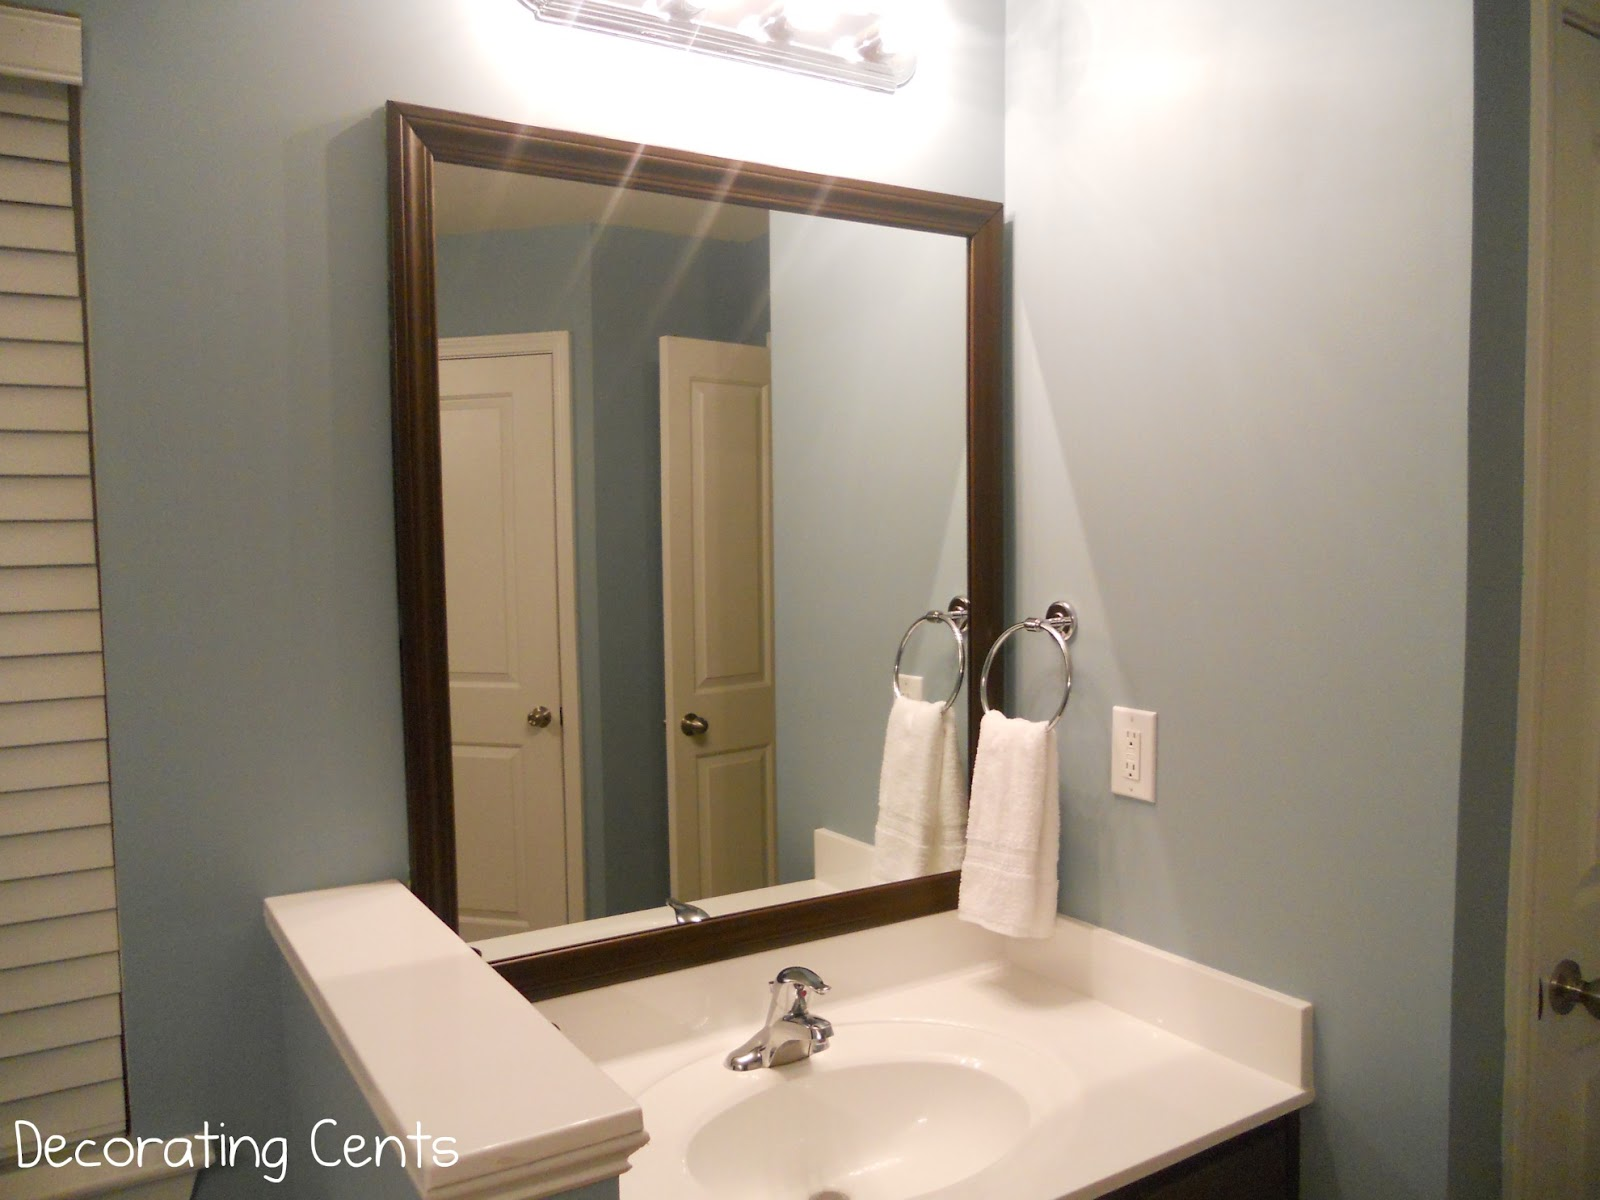 Mirror In The Bathroom Glamorous Decorating Cents Framing The Bathroom Mirrors 2017